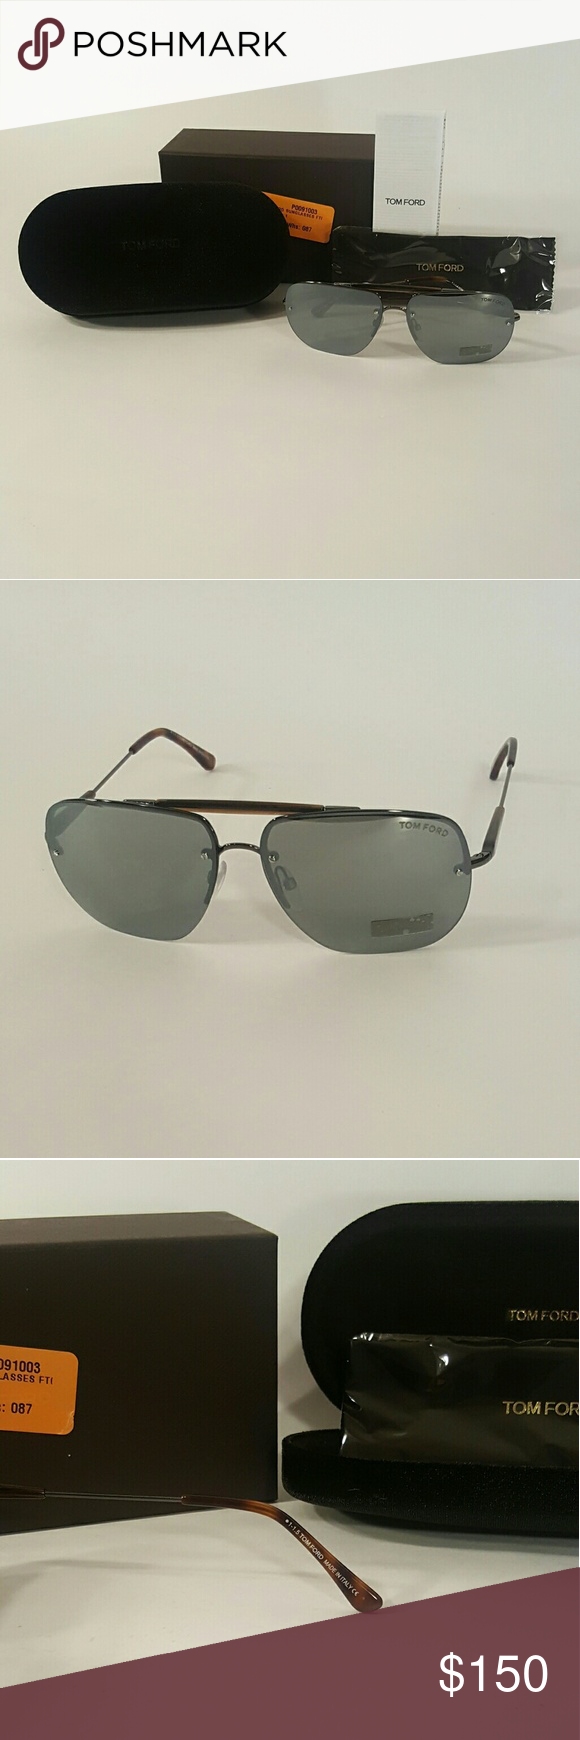 NEW Men's Tom Ford Aviator Sunglasses NEW, all in original packaging. Mens Tom Ford FT0380 Sunglasses  Men's Nils Semi Rimless Aviator Sunglasses Size: 61-13-140 Color: Gunmetal/ Brown/ Grey/ Silver Lens Color: Silver Mirror Opt for a sleek and edgy contemporary look with these Tom Ford FT0380 02B 61 Nils Semi Rimless Aviator Sunglasses in Matte Black.  -Aviator semi-rimless squarer design crafted from a lightweight metal.  -Complete with 'sweat brow? detail - T-logo detail which is a…